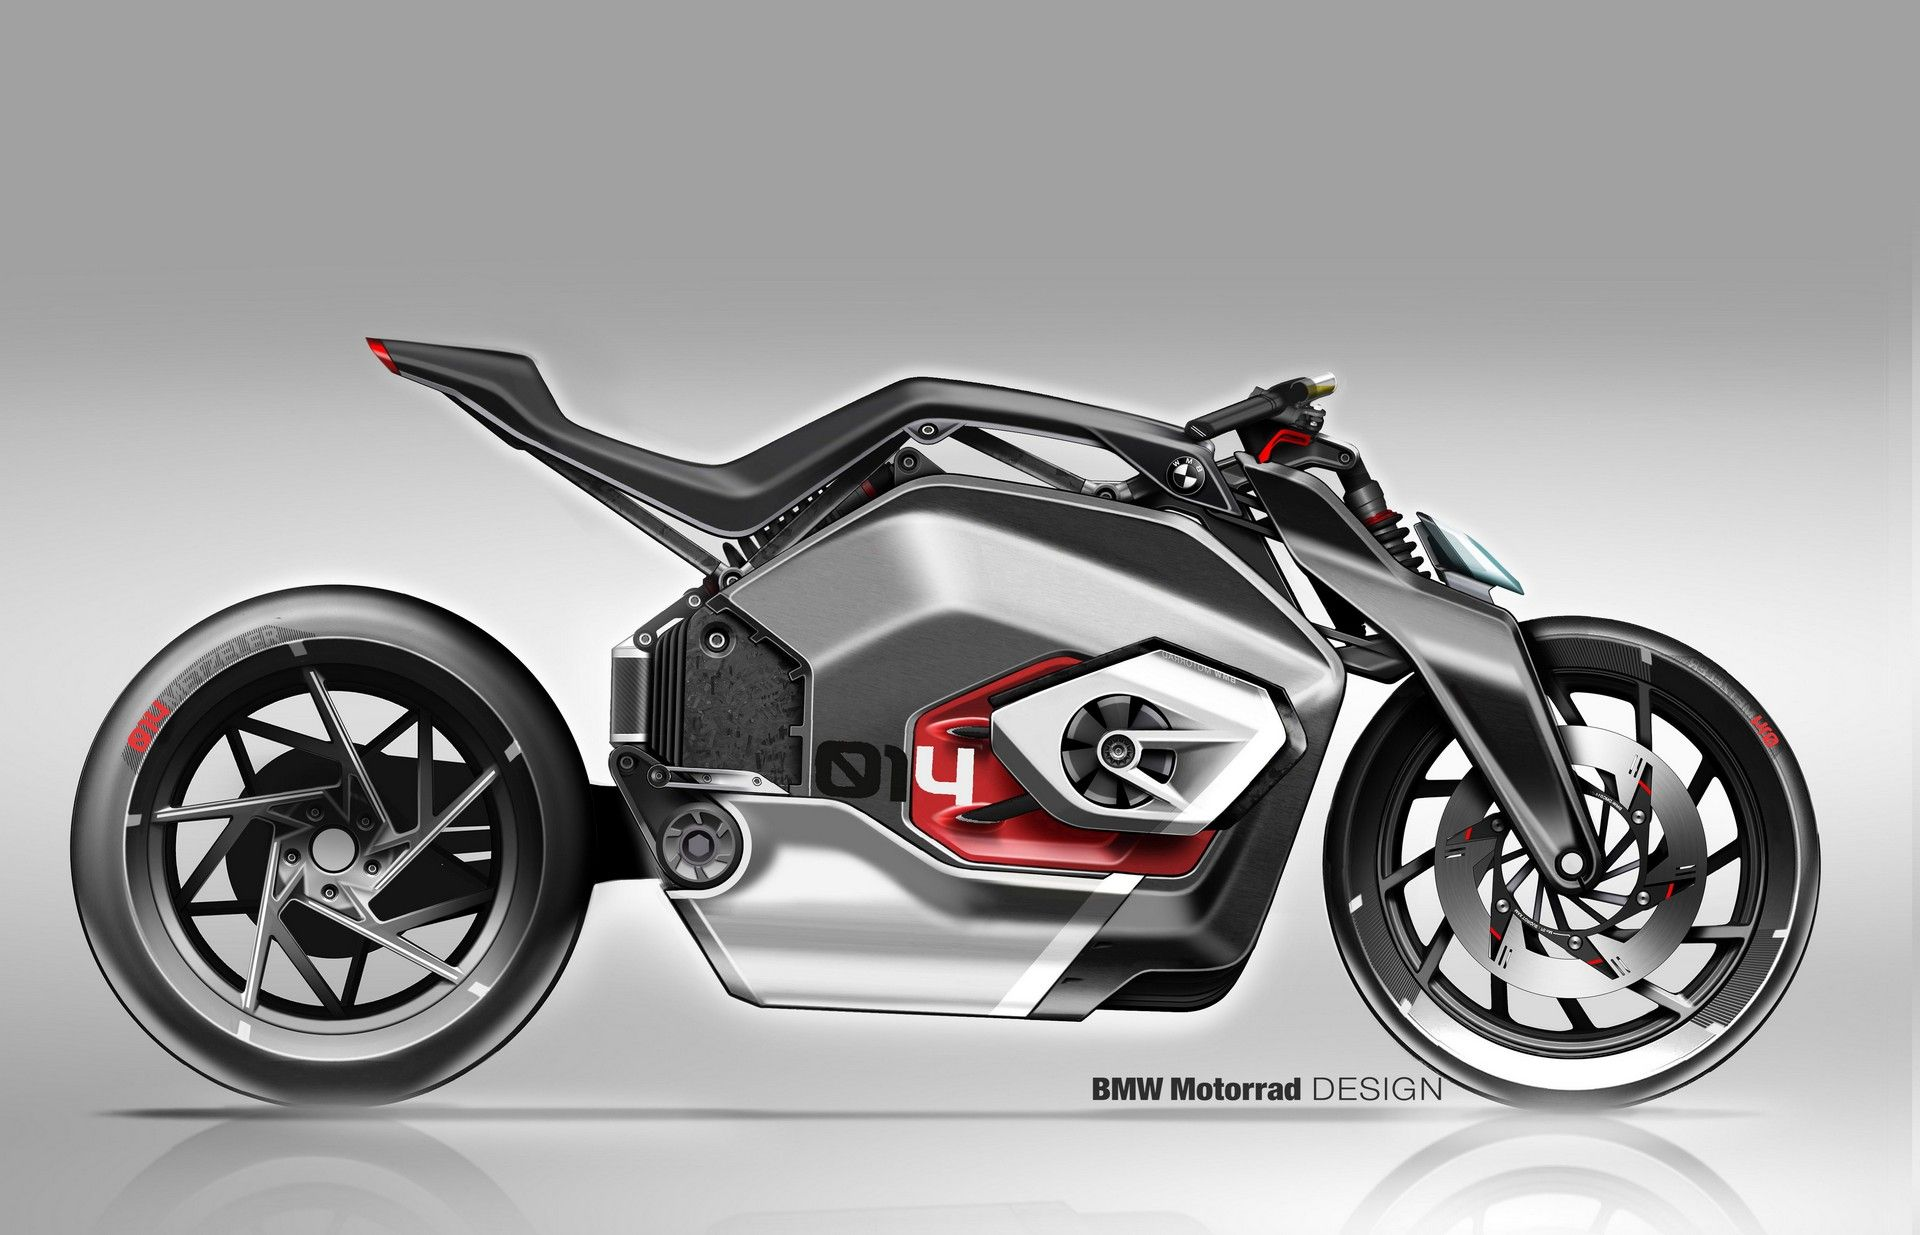 Bmw S Vision Dc Roadster Is A Futuristic Electric Motorcycle Carscoops Motorcycle Design Motorbike Design Bmw Motorrad